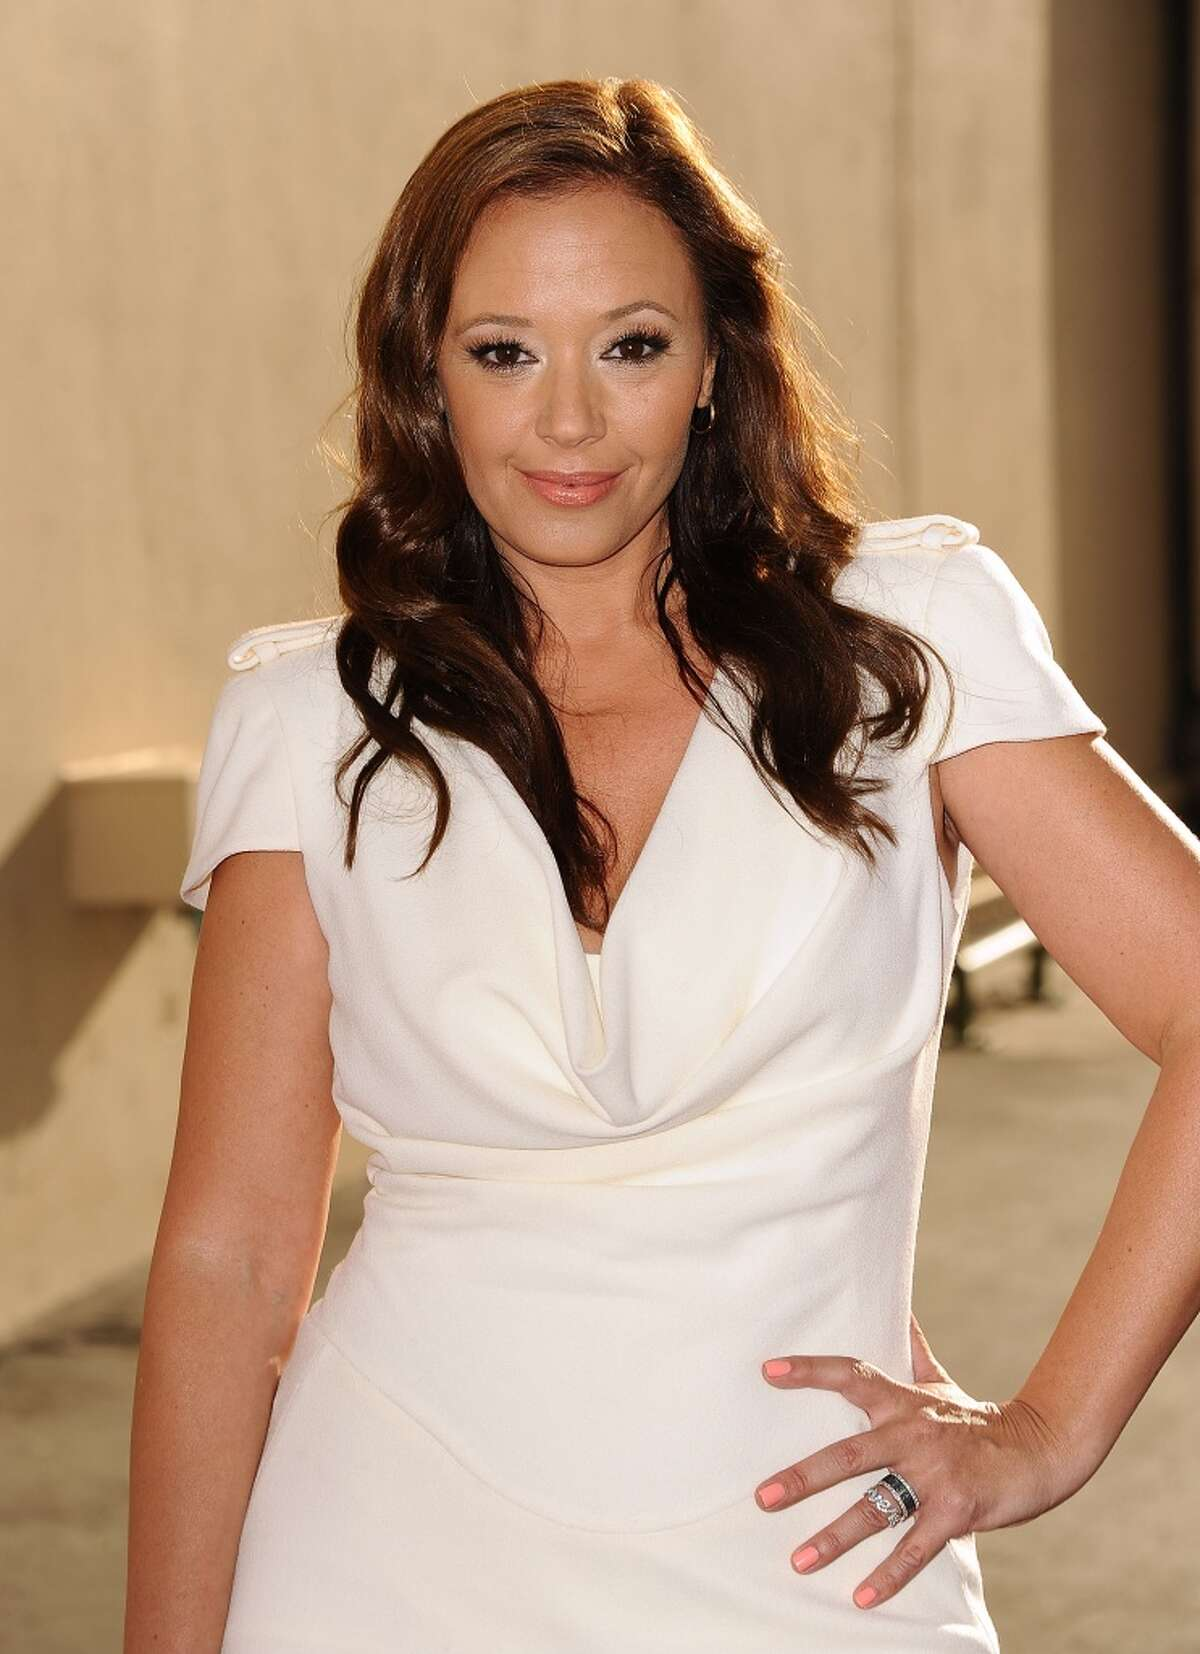 Actress Leah Remini ended her 30 or so years in the church over issues with leadership. But she wasn't the only high-profile Scientologist (Photo by Jason LaVeris/FilmMagic)